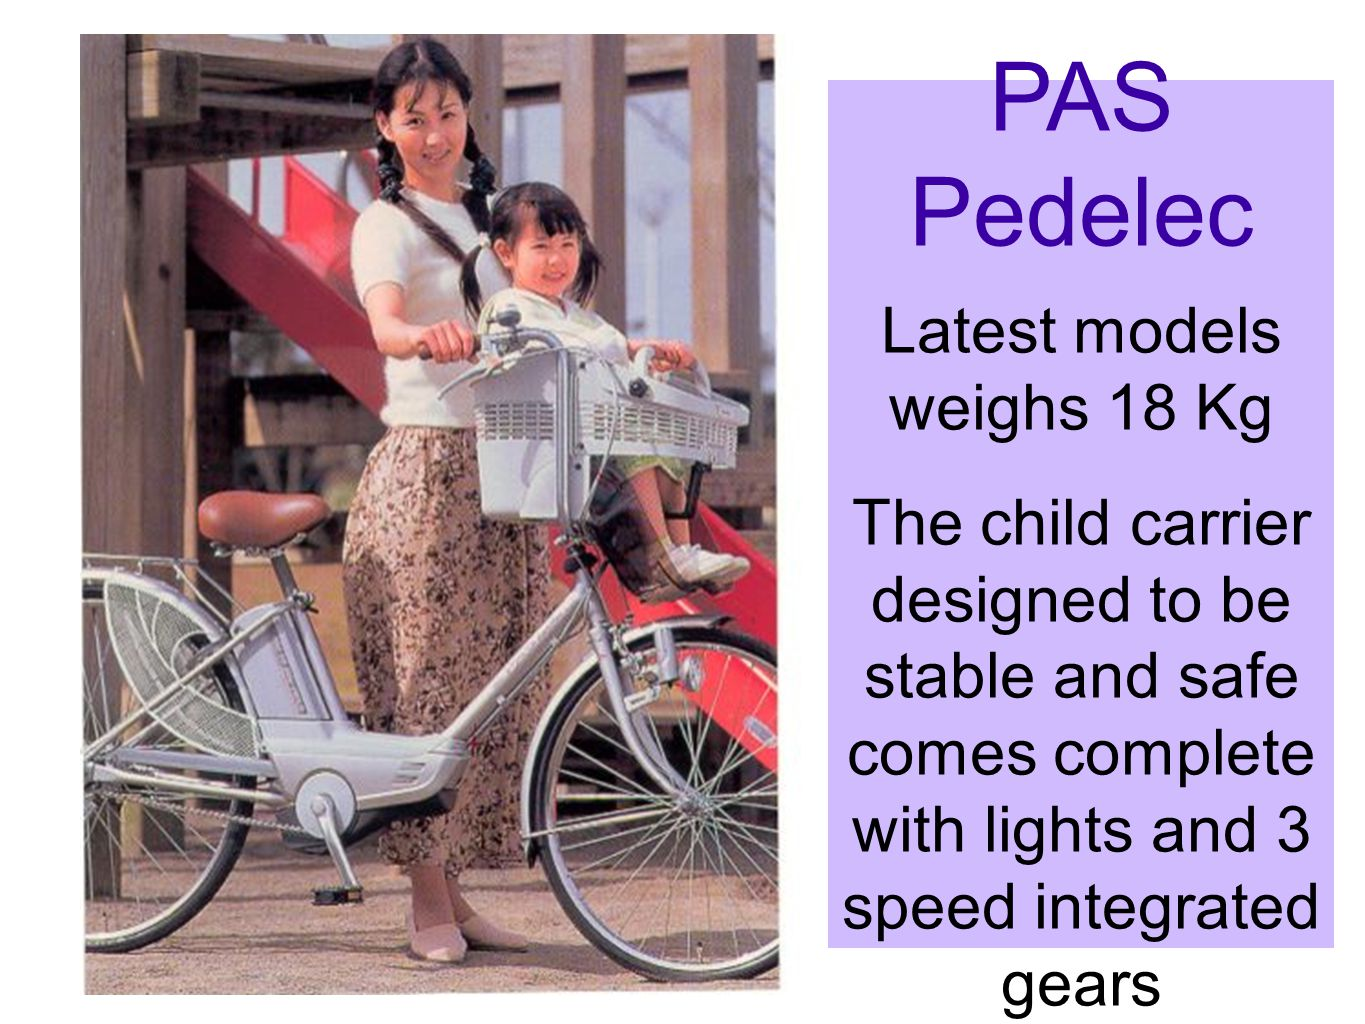 PAS Pedelec Latest models weighs 18 Kg The child carrier designed to be stable and safe comes complete with lights and 3 speed integrated gears